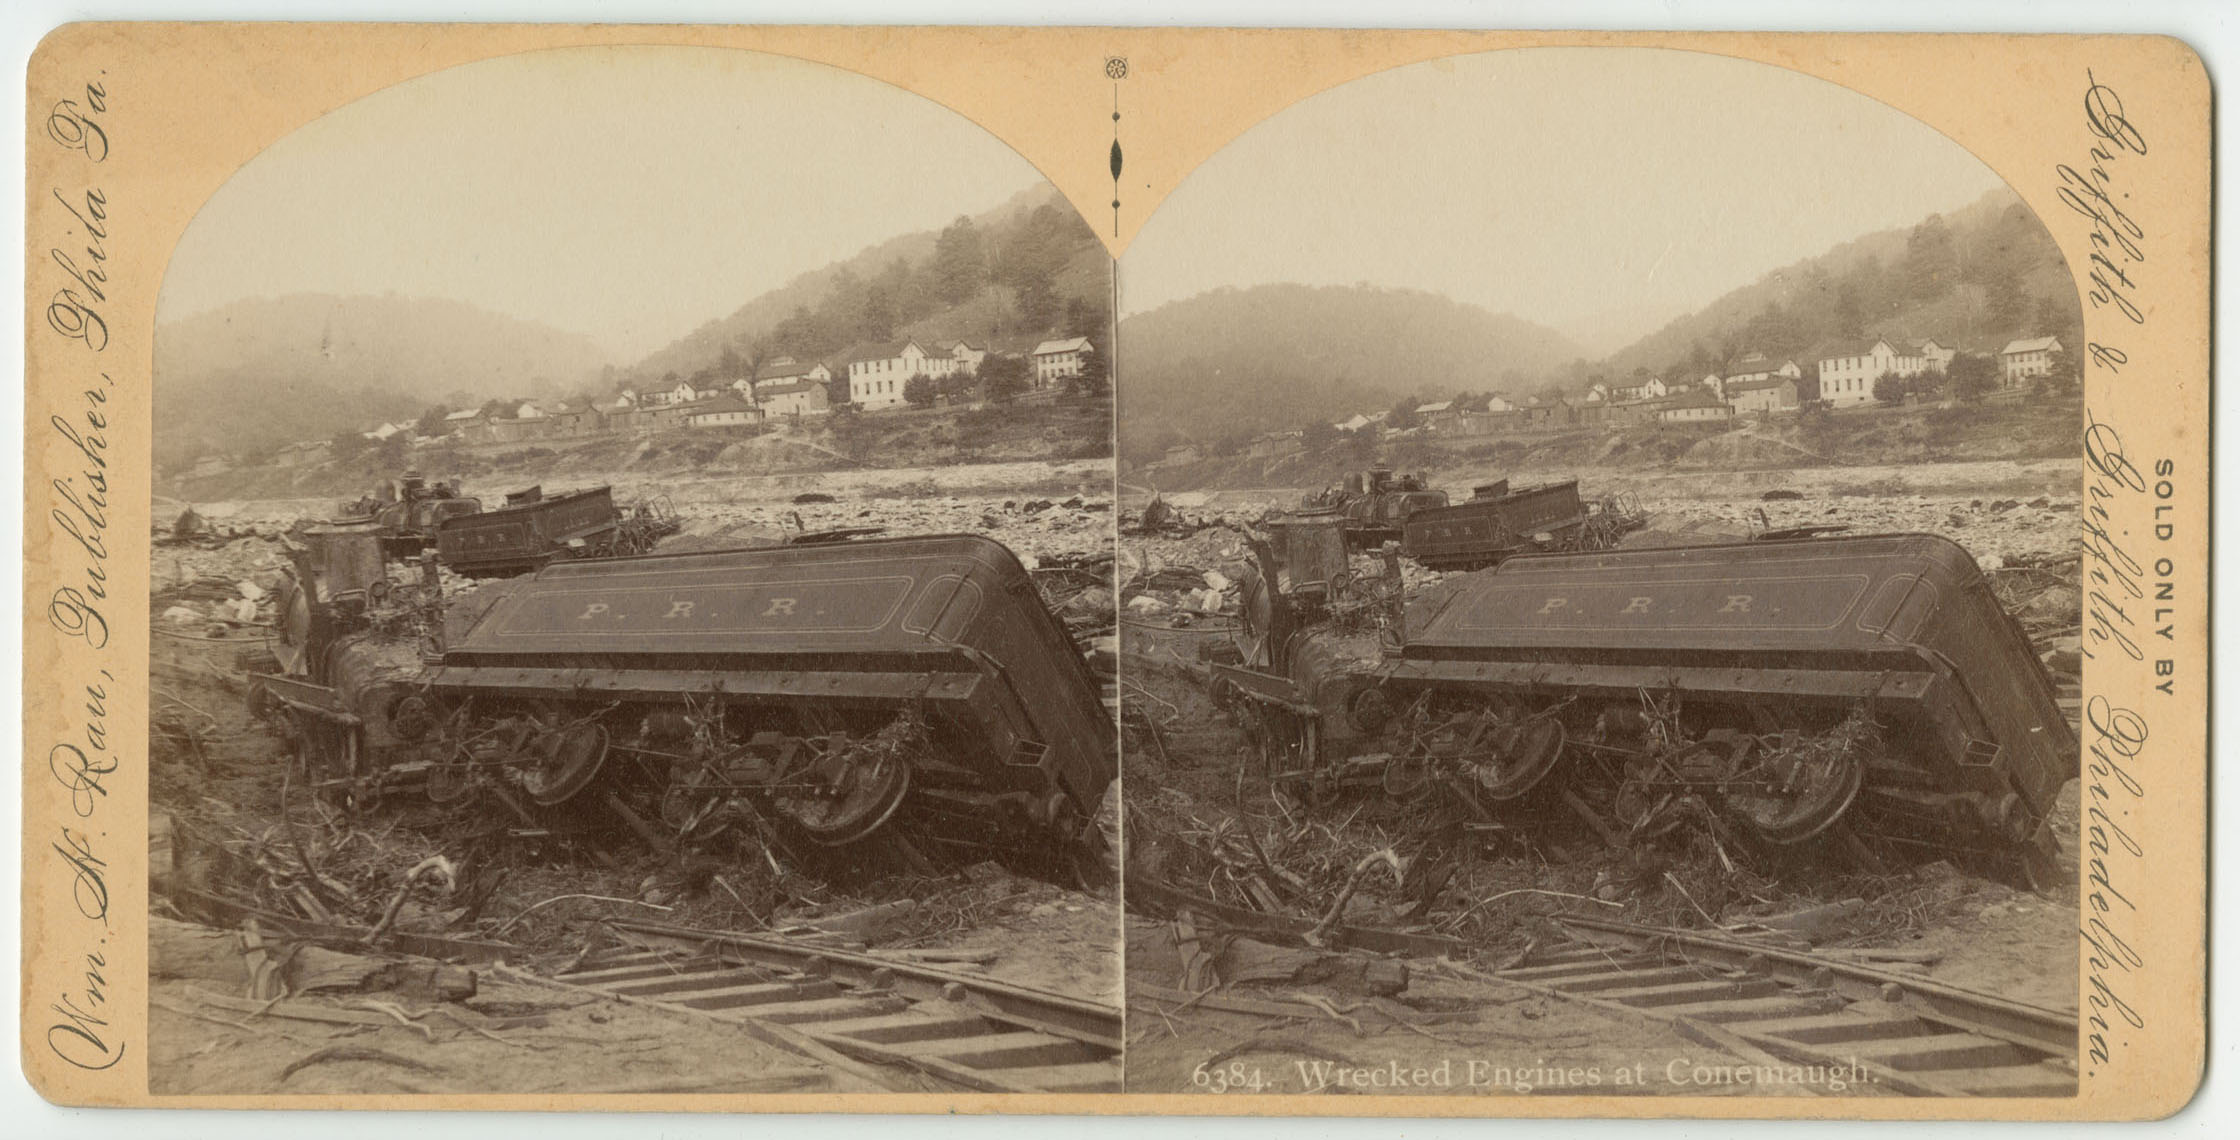 Wrecked engines at Conemaugh. ca. 1889.